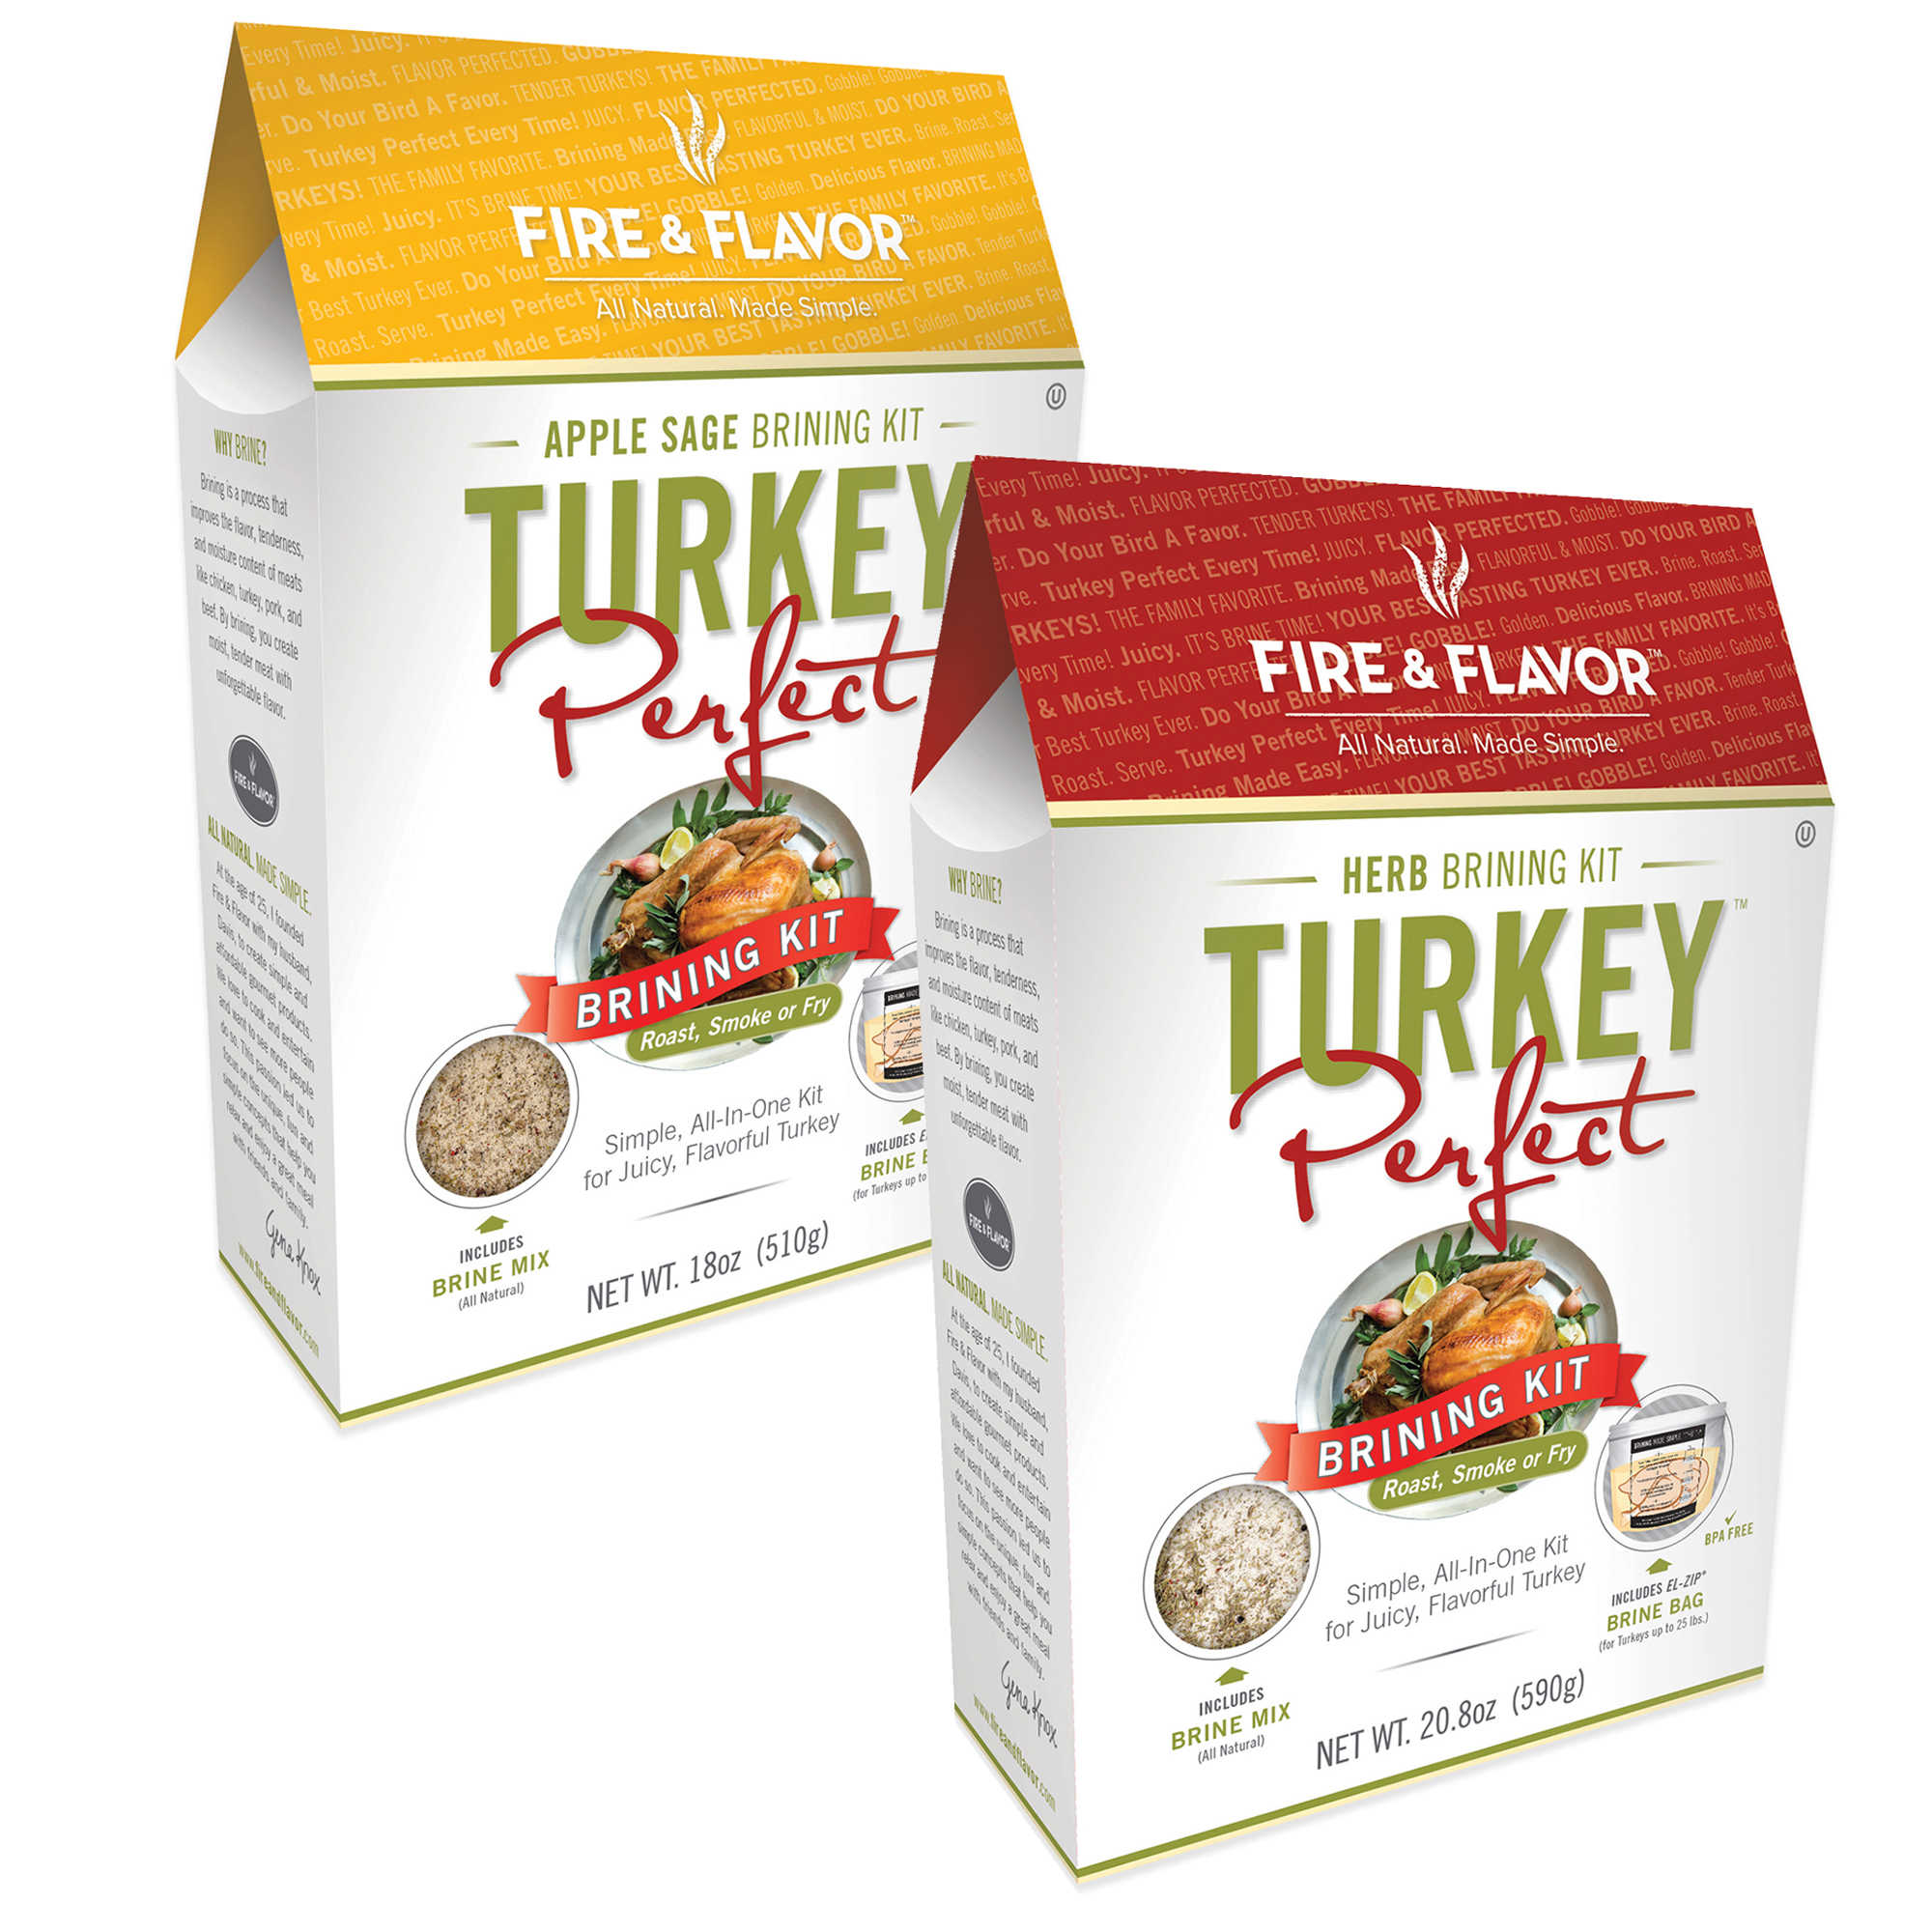 how to cook turkey what you need SPY guide brining kit